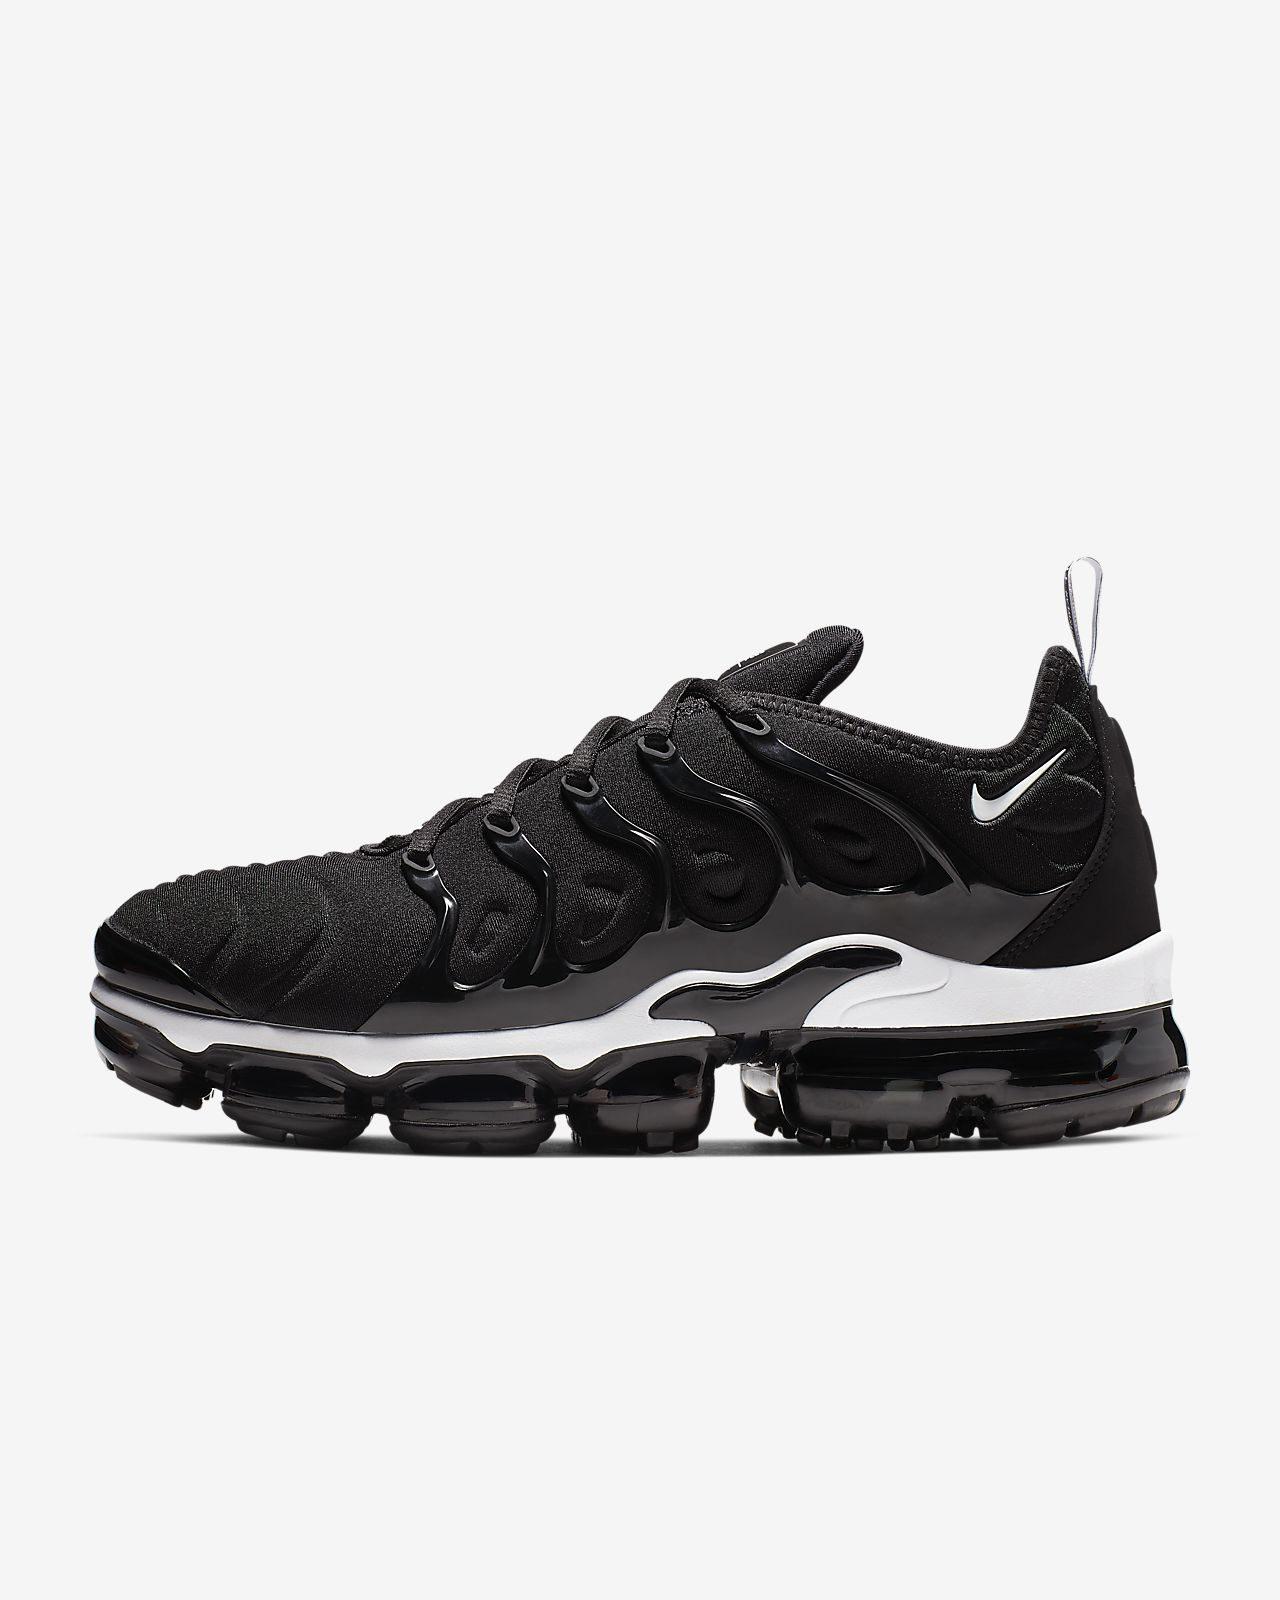 bcc99a36feaf Nike Air VaporMax Plus Men s Shoe. Nike.com GB